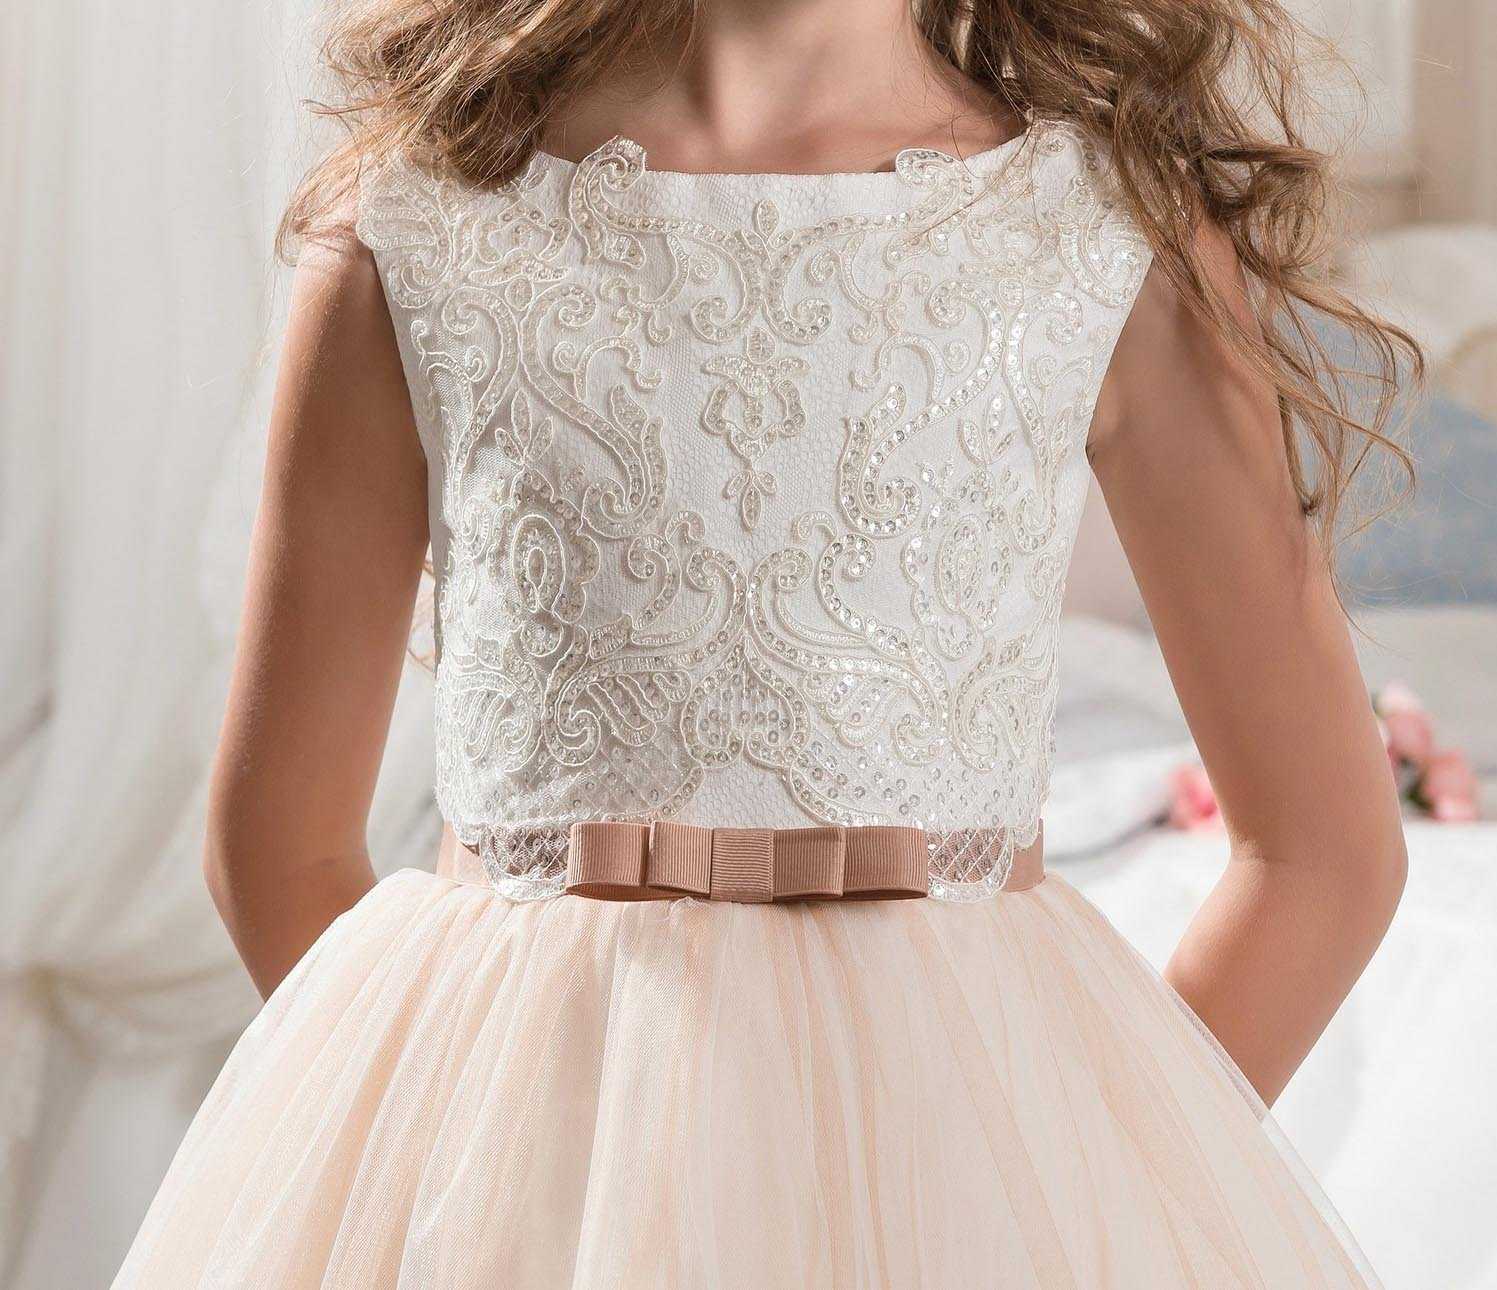 KissAngel Ivory Long Lace Flower Girl Dresses Champagne Less Party Dress (2, Ivory &Champagne) by KissAngel (Image #4)